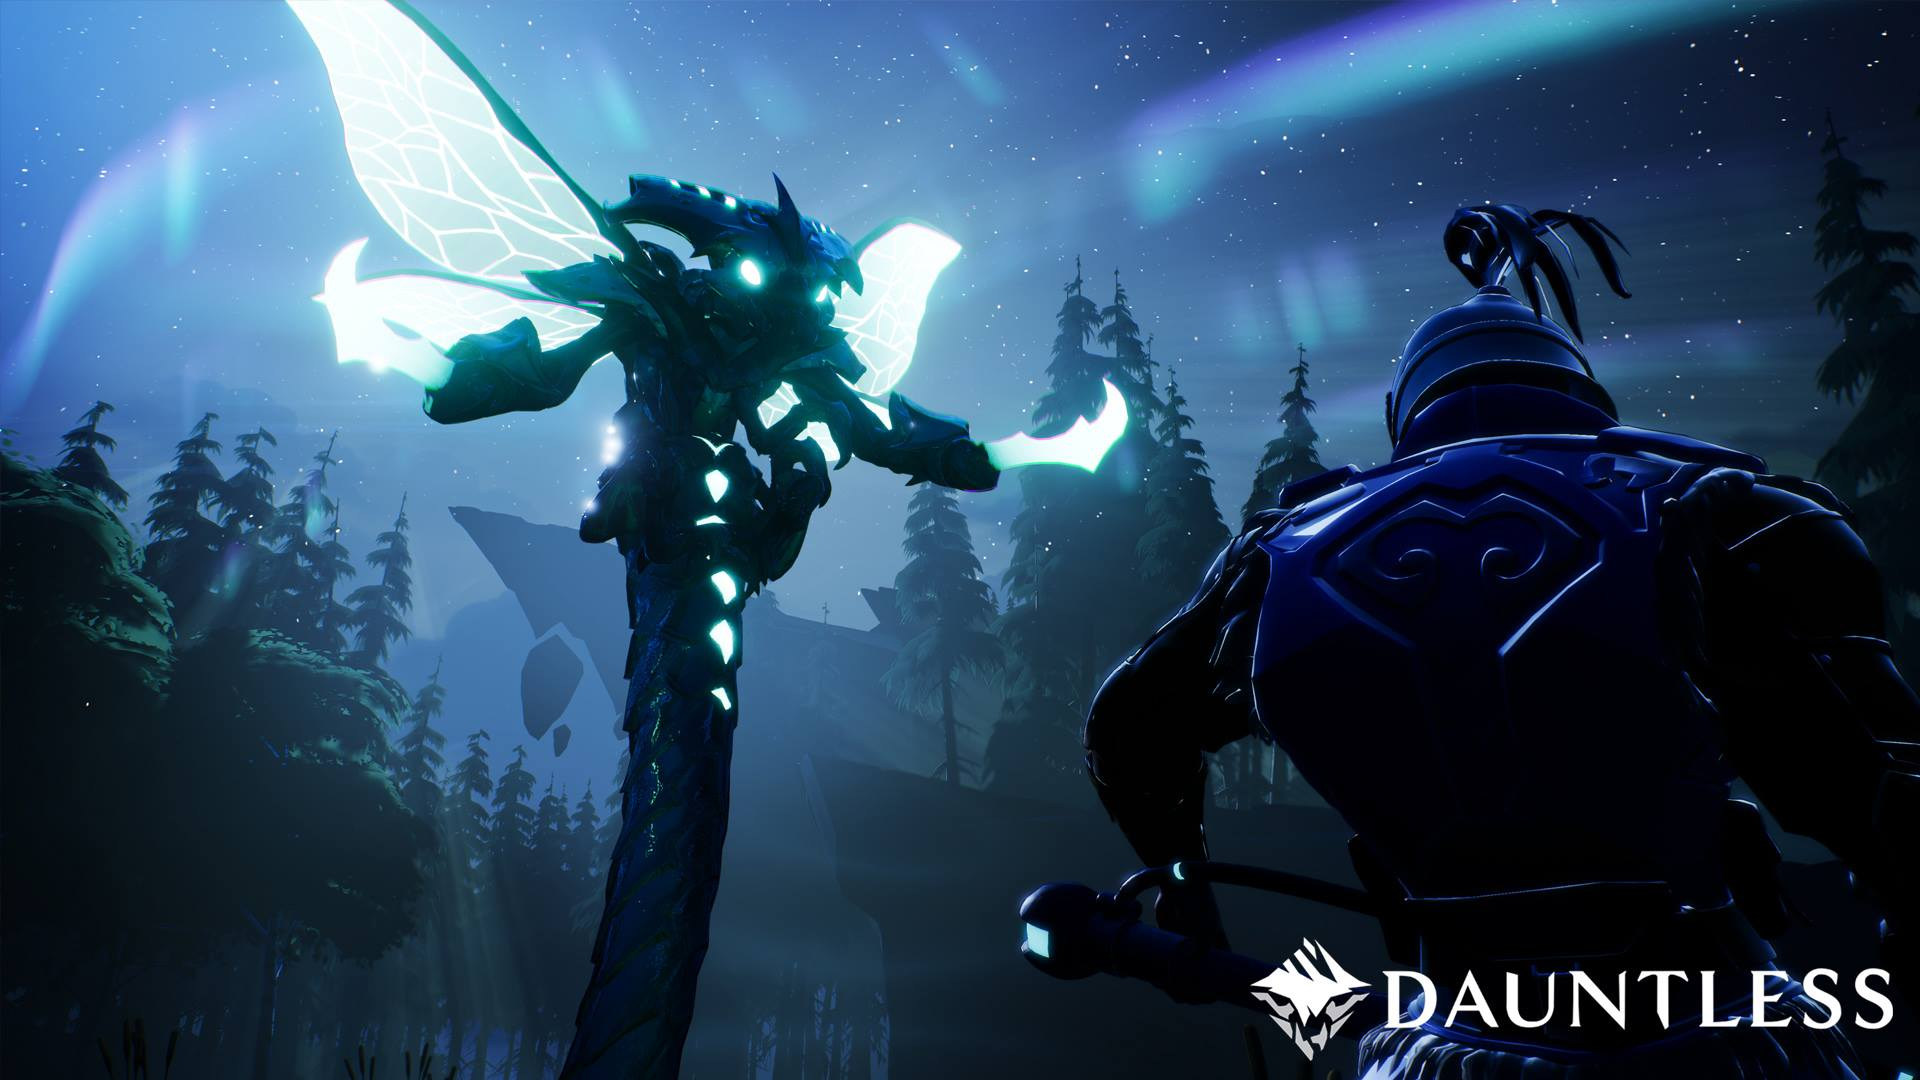 How to get Lustrous Tailplate in Dauntless